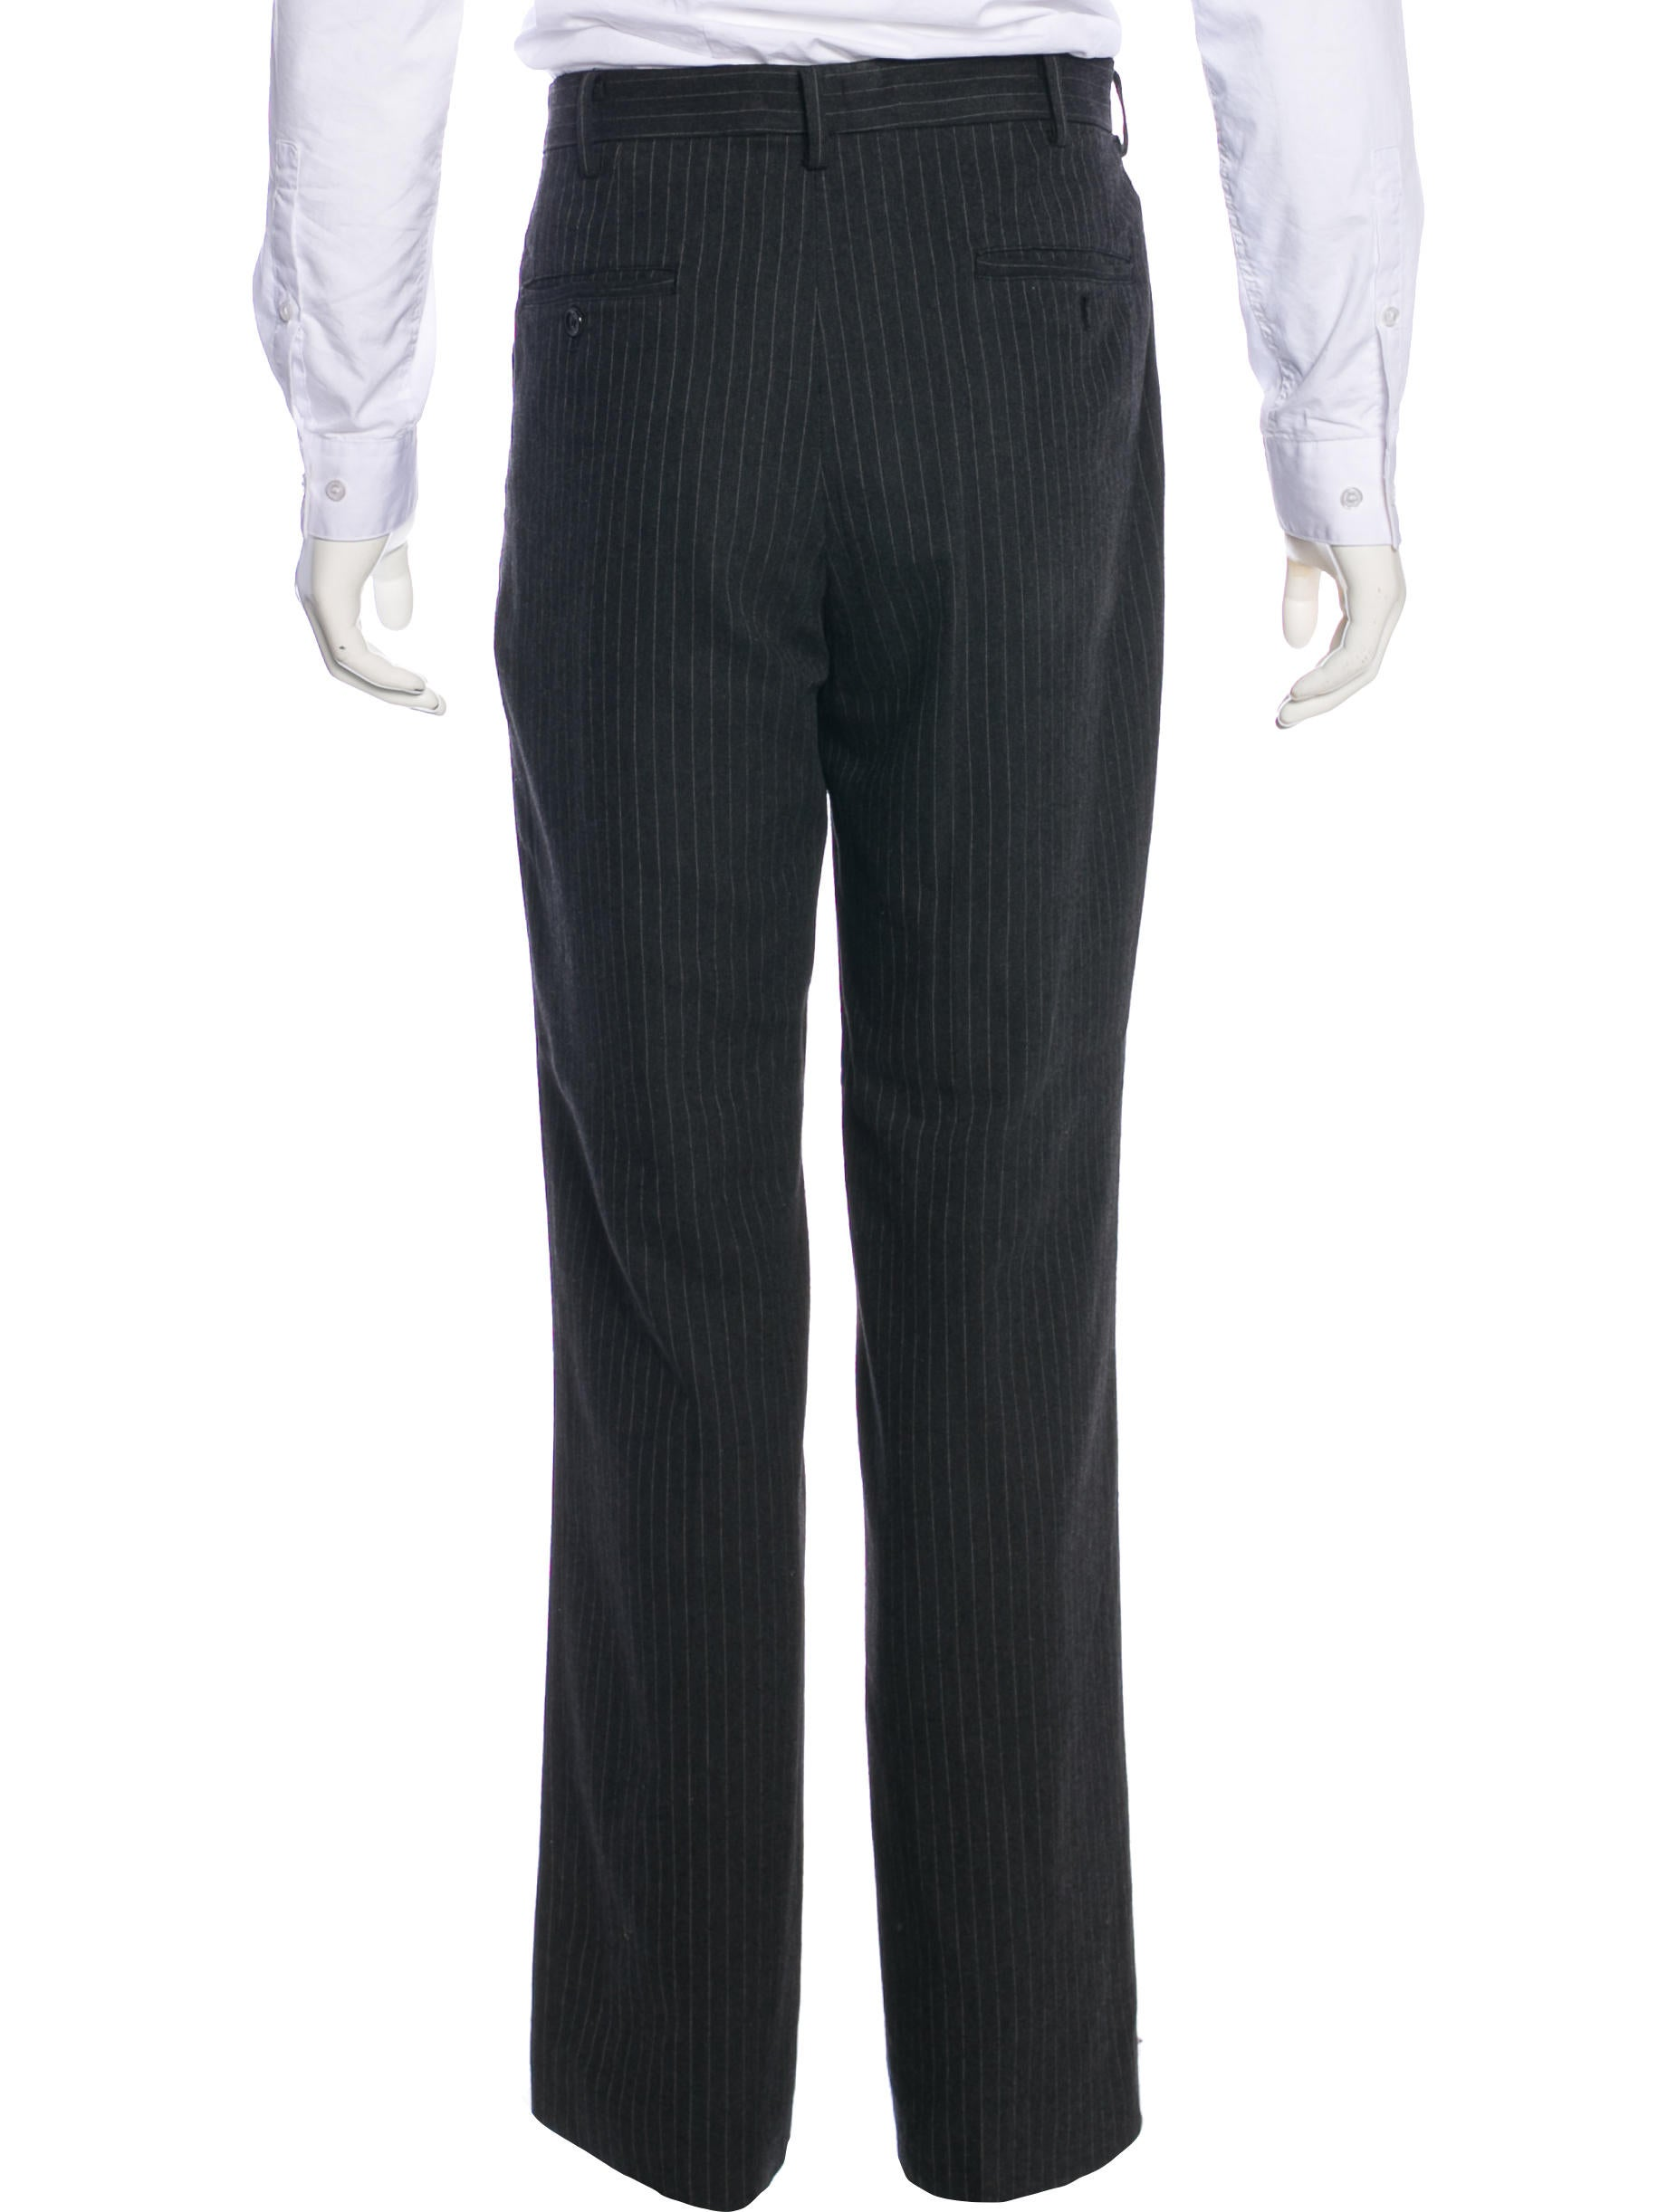 Find great deals on eBay for mens striped dress pants. Shop with confidence.